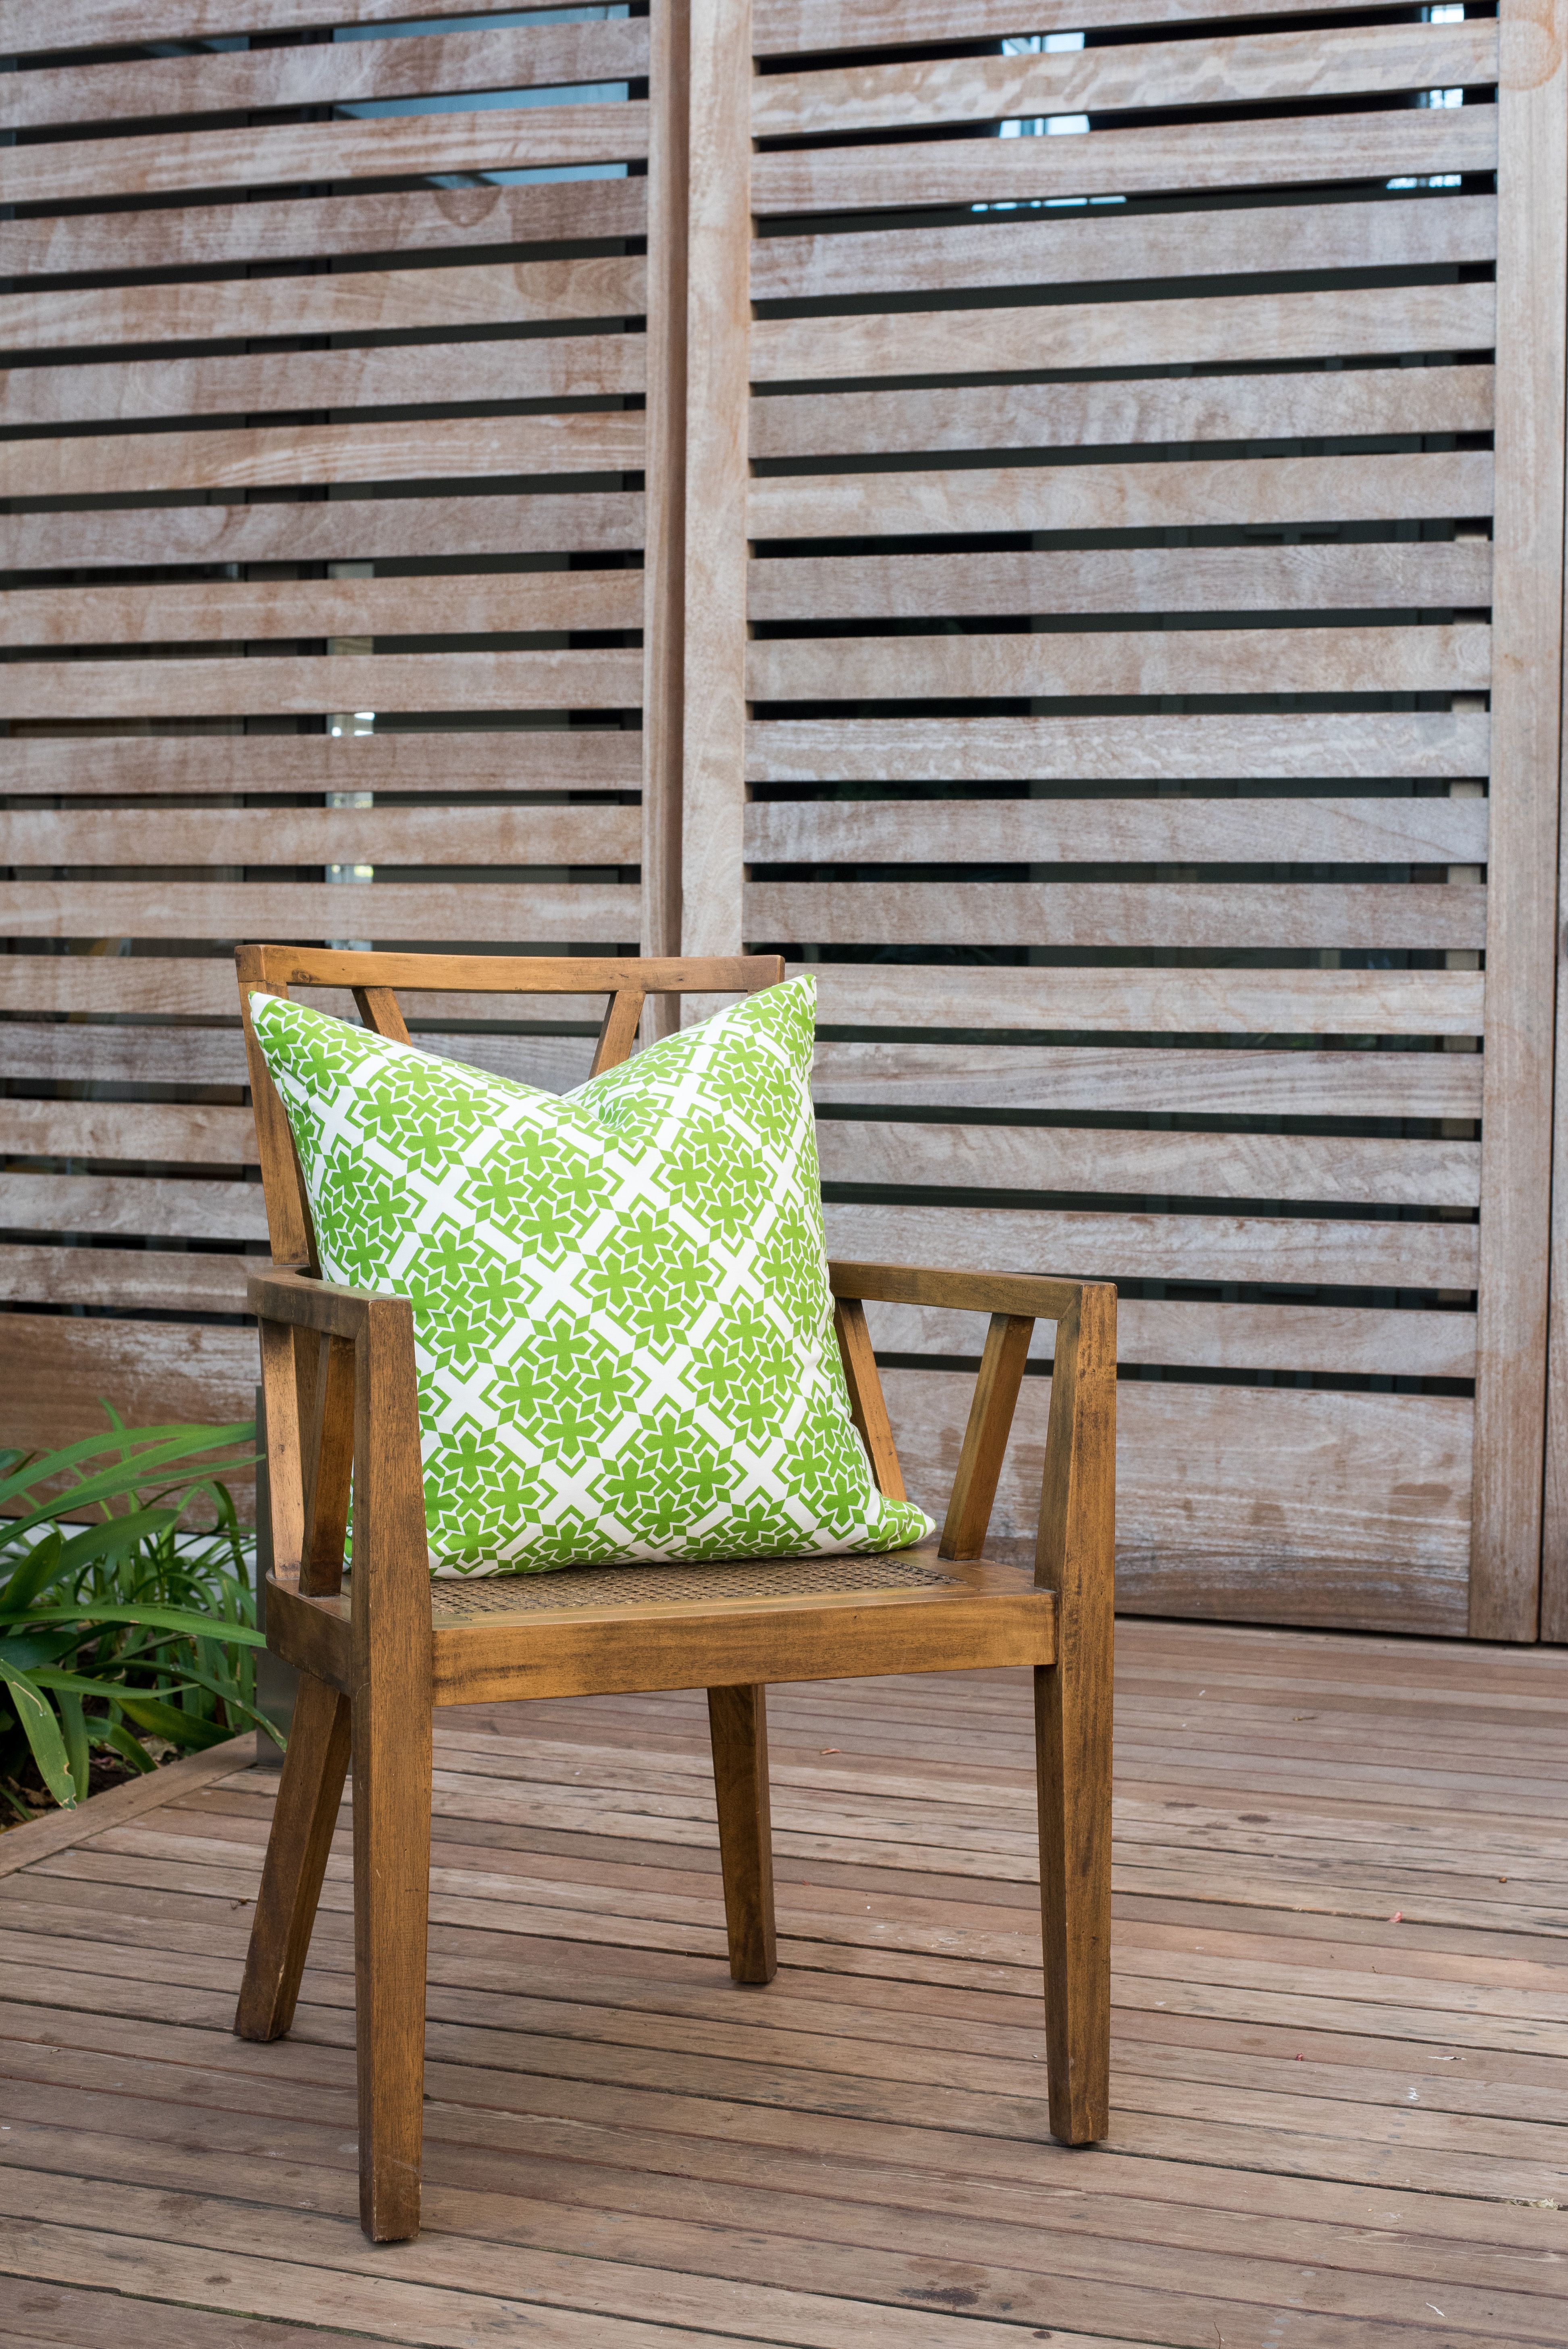 Green morocco cm x cm scatter cushion by phlo studio from r